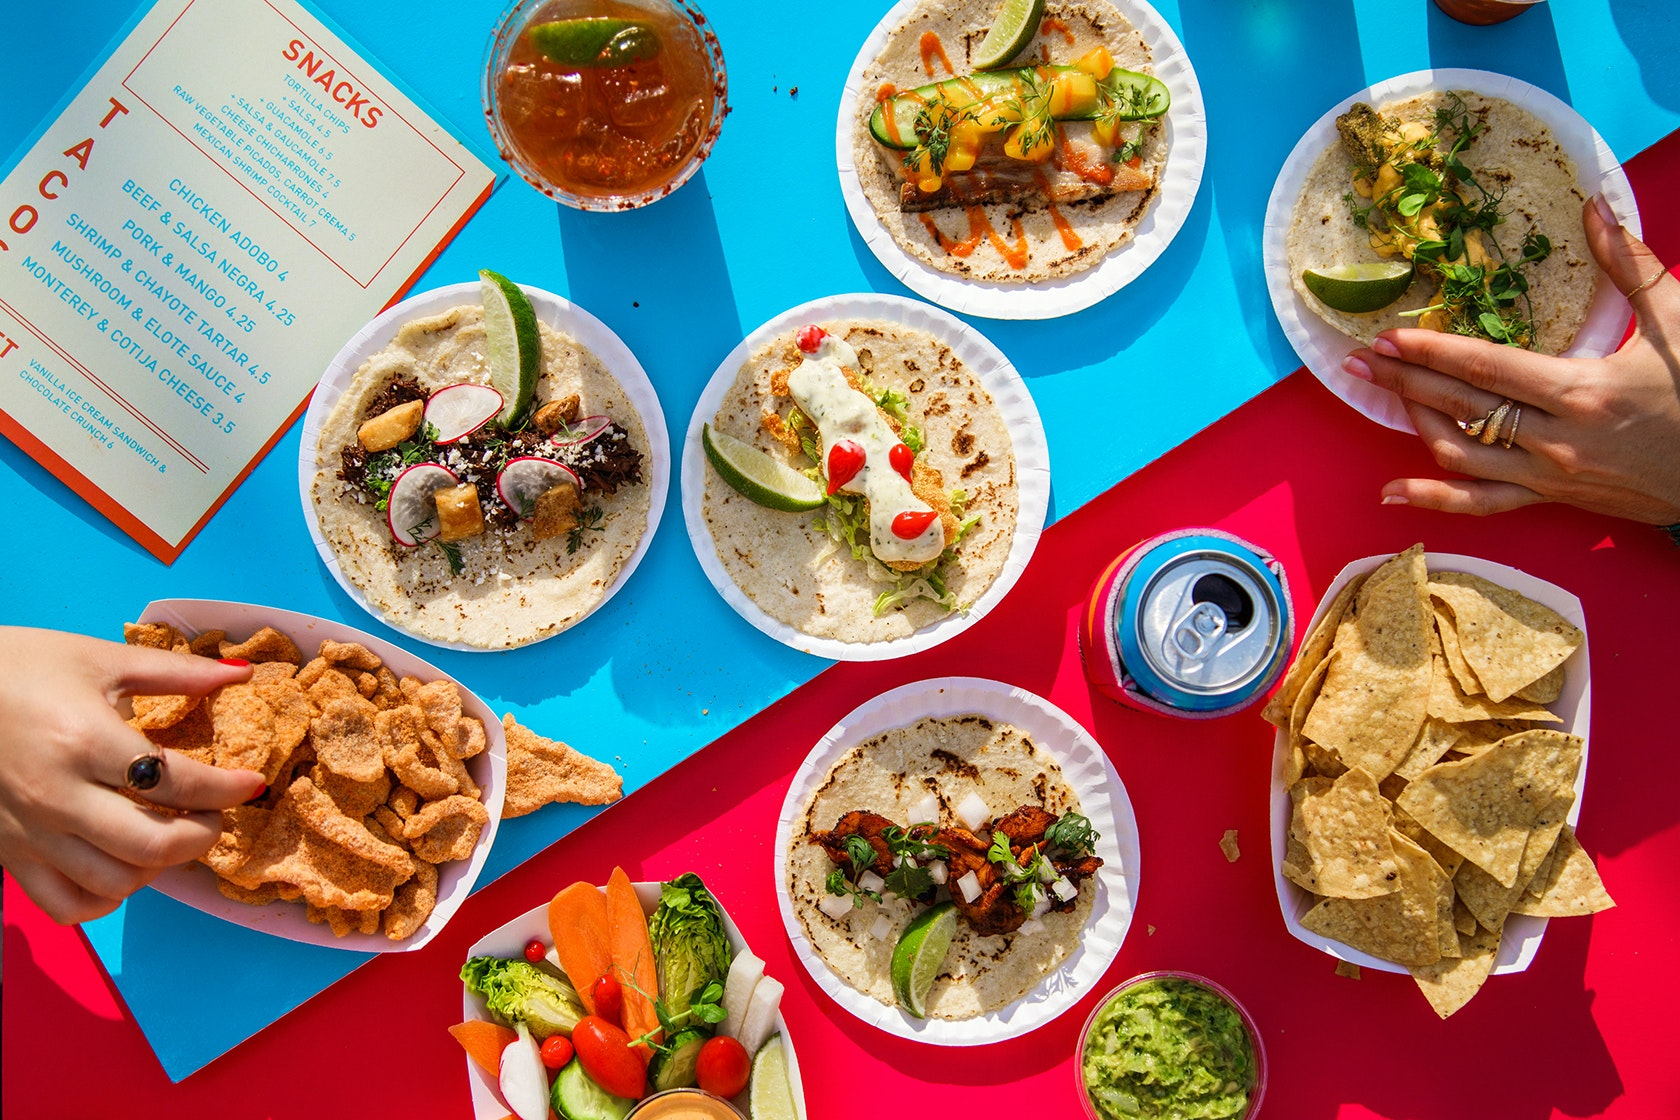 Danny Meyer's latest venture serves a variety of tacos, cocktails, and snacks.